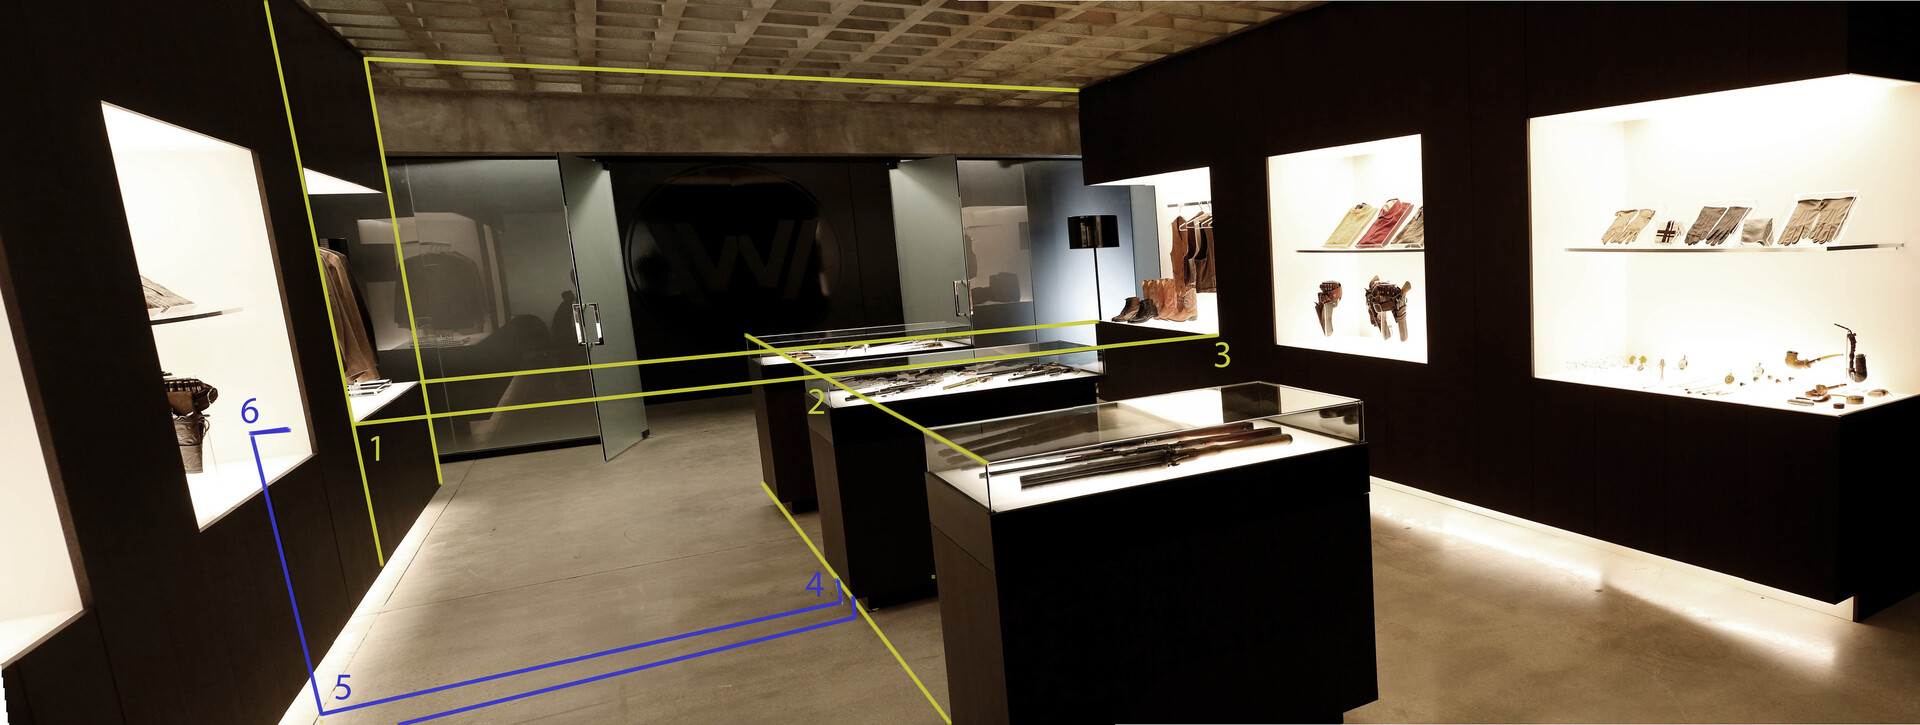 Construction line showing my process extracting the show's room dimensions